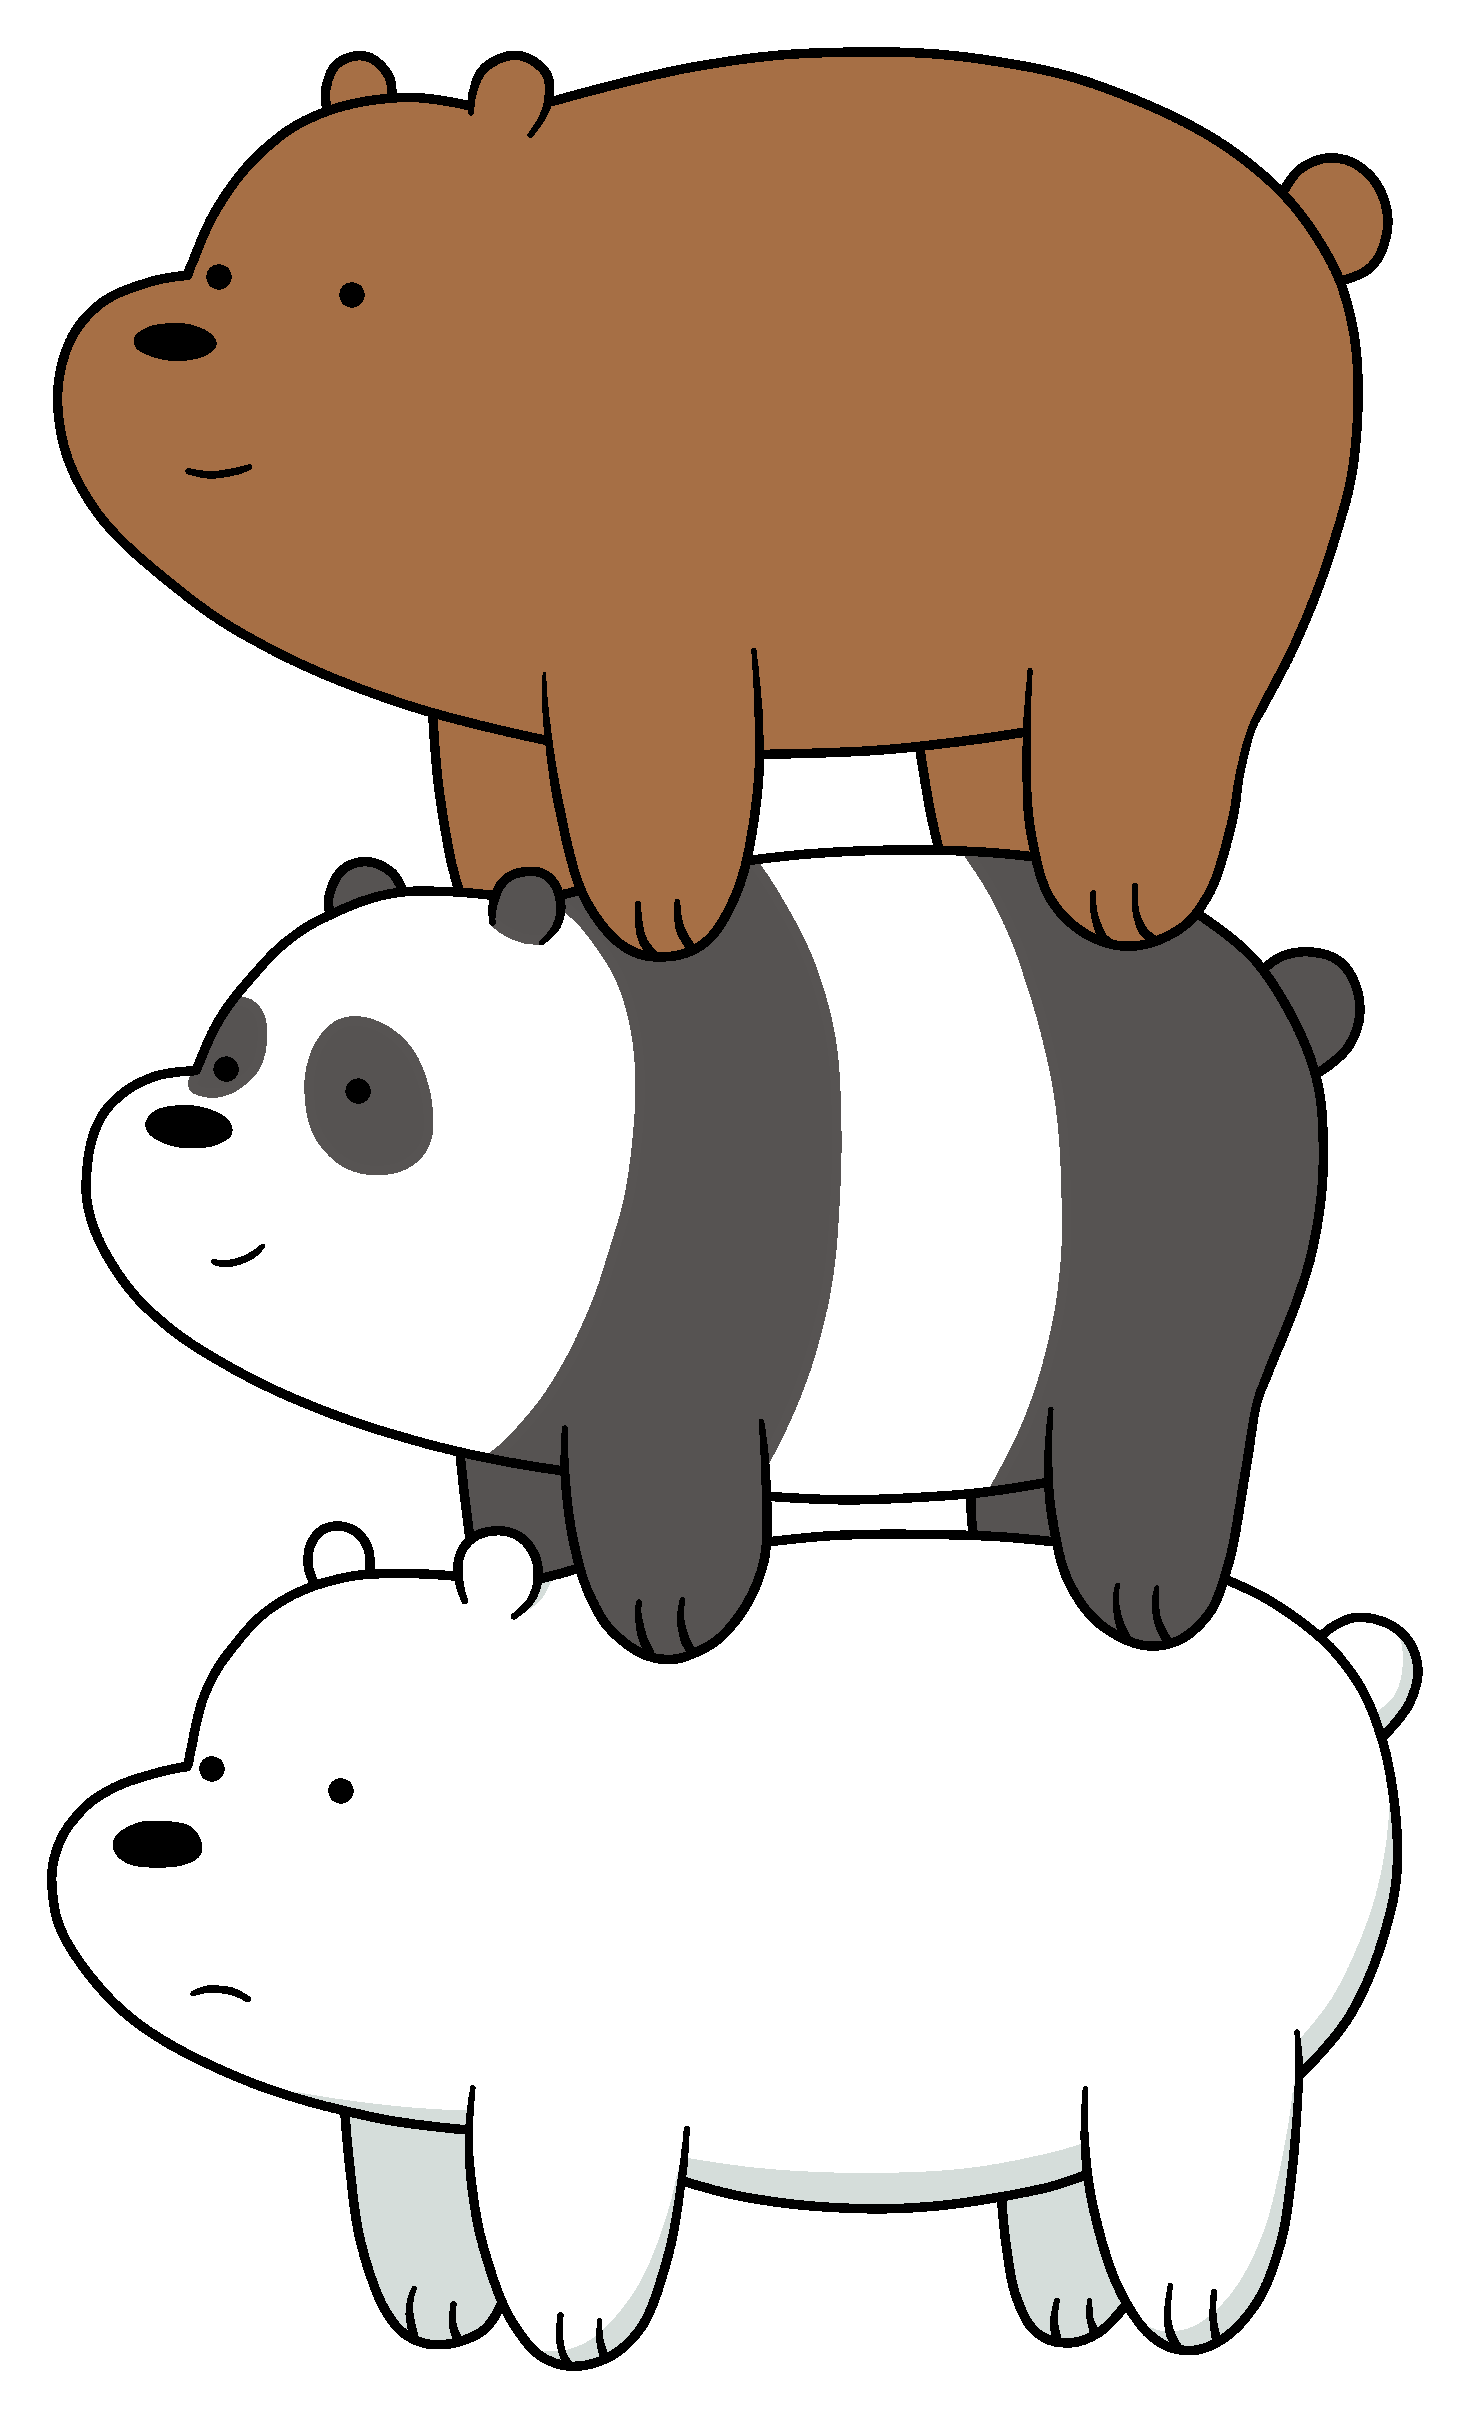 Clipart bed three bears. Bear stack we bare